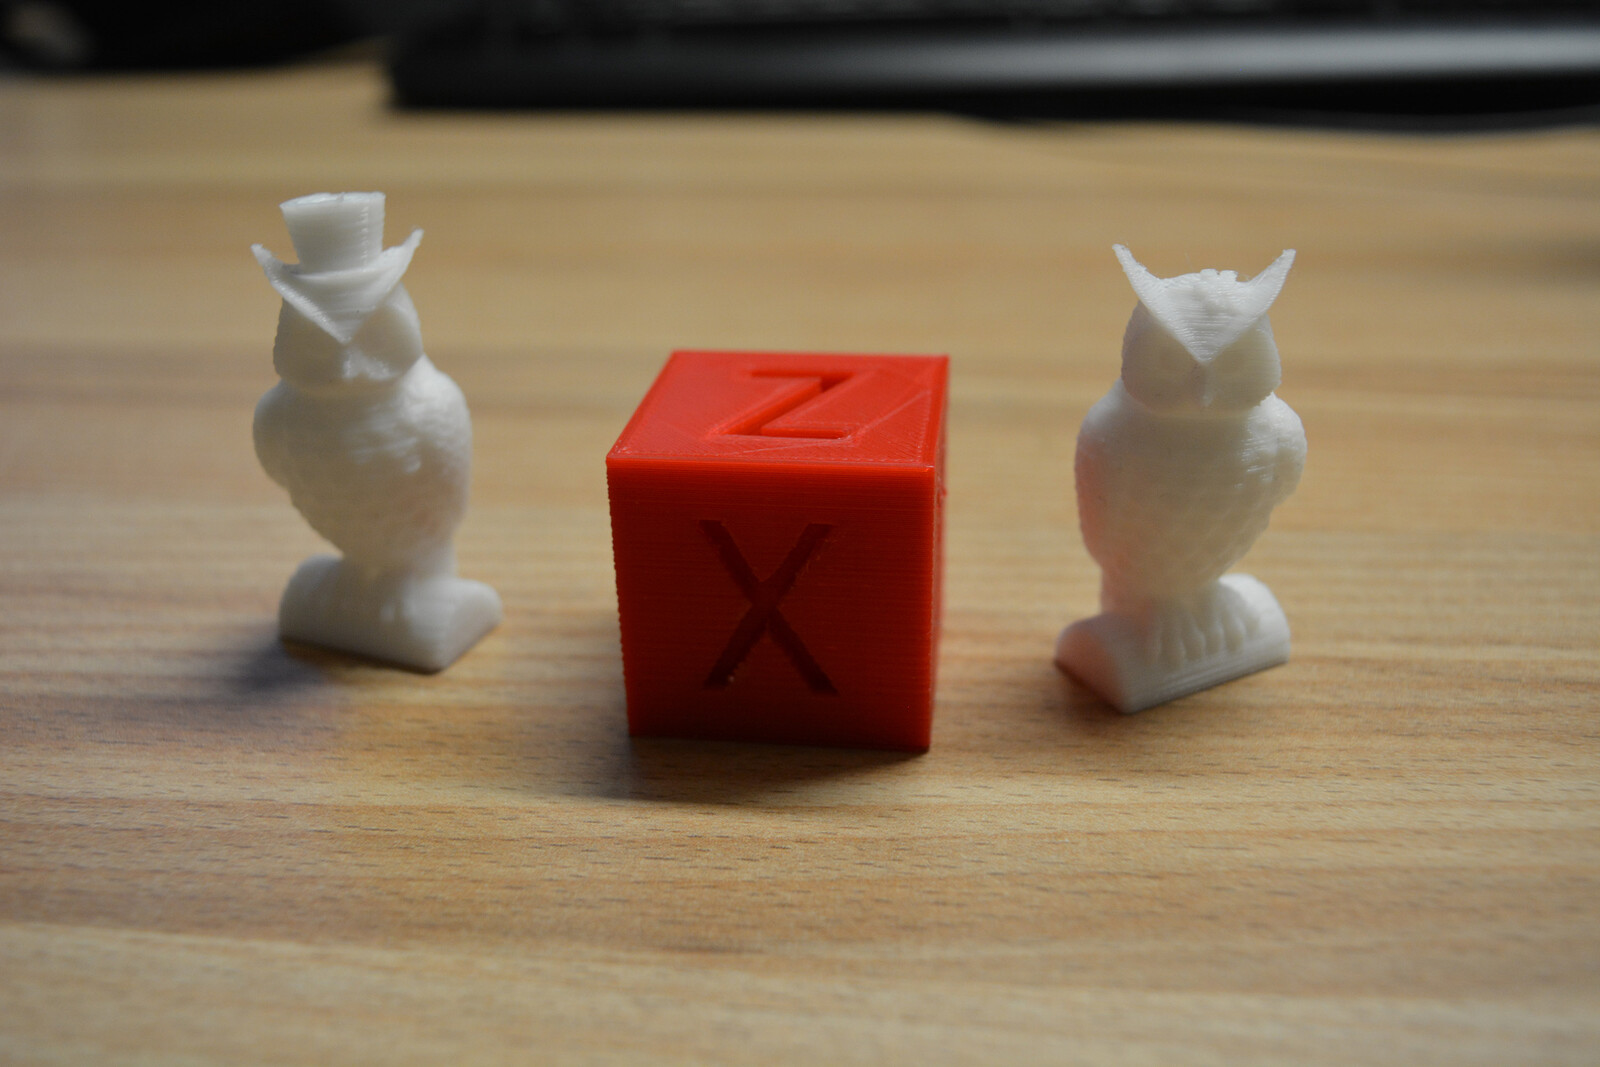 Anycubic Owl Pair and a calpbration cube https://www.thingiverse.com/thing:1278865